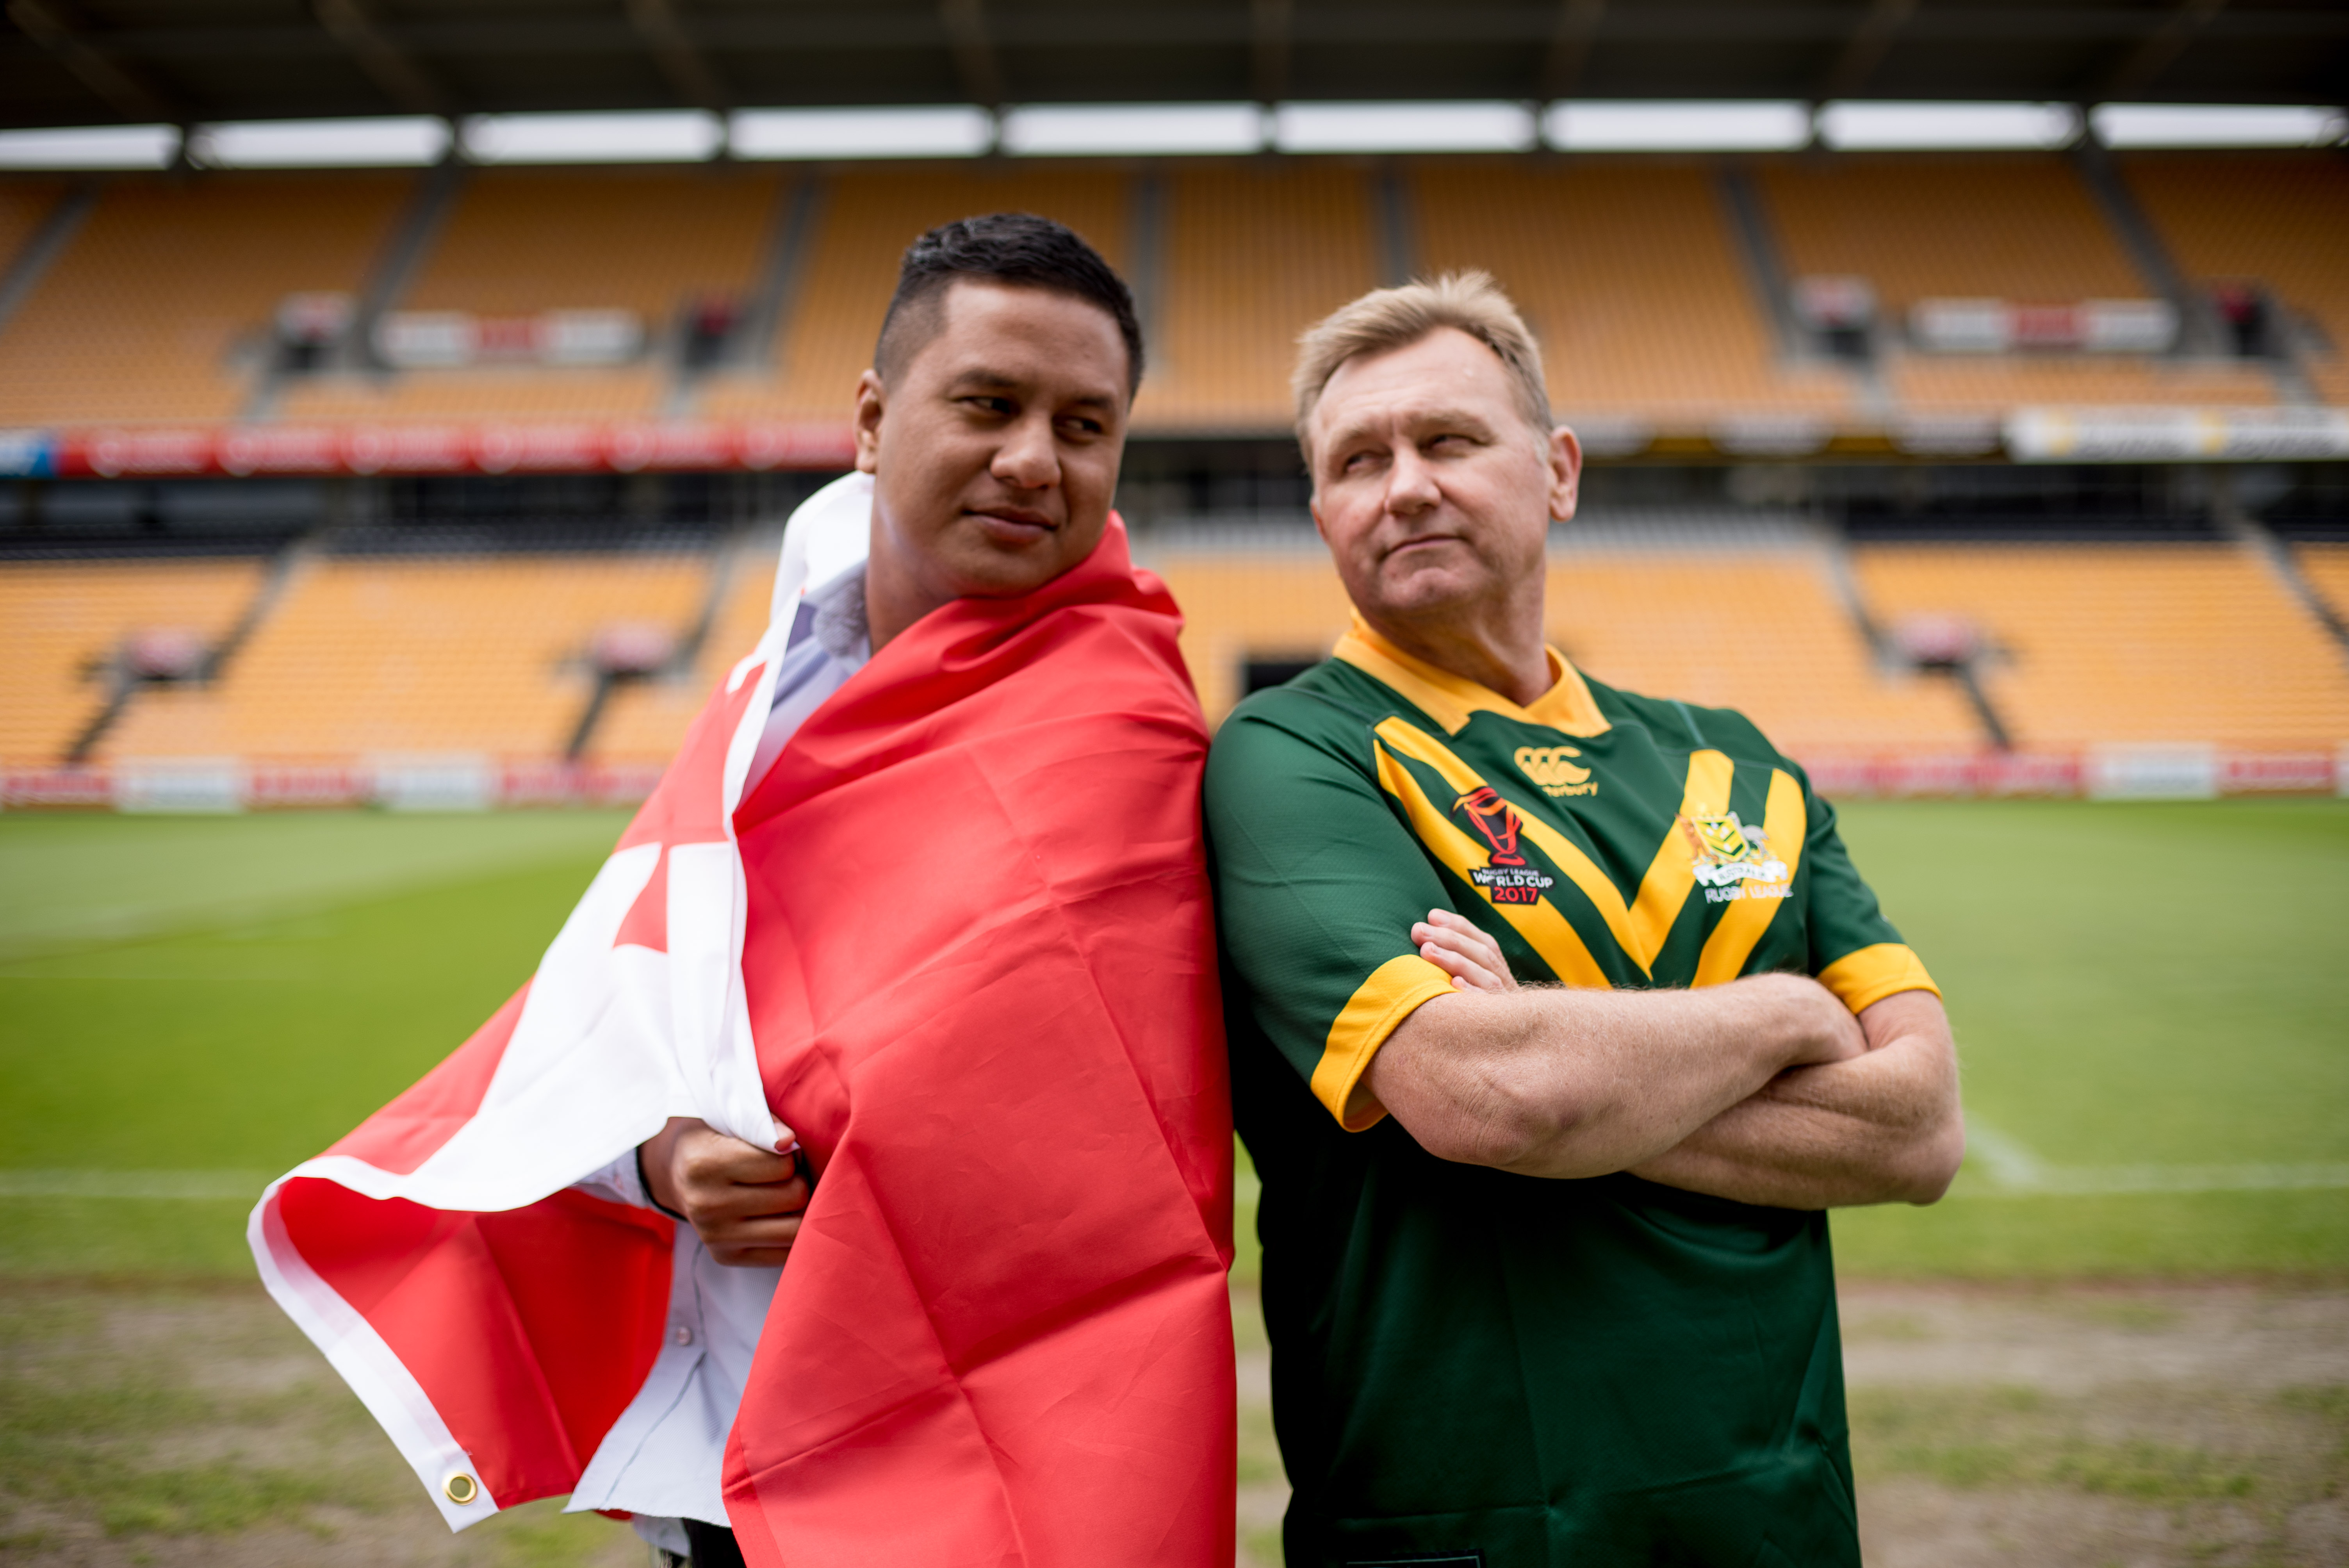 Rivalry Strong for Stadium Management Duo